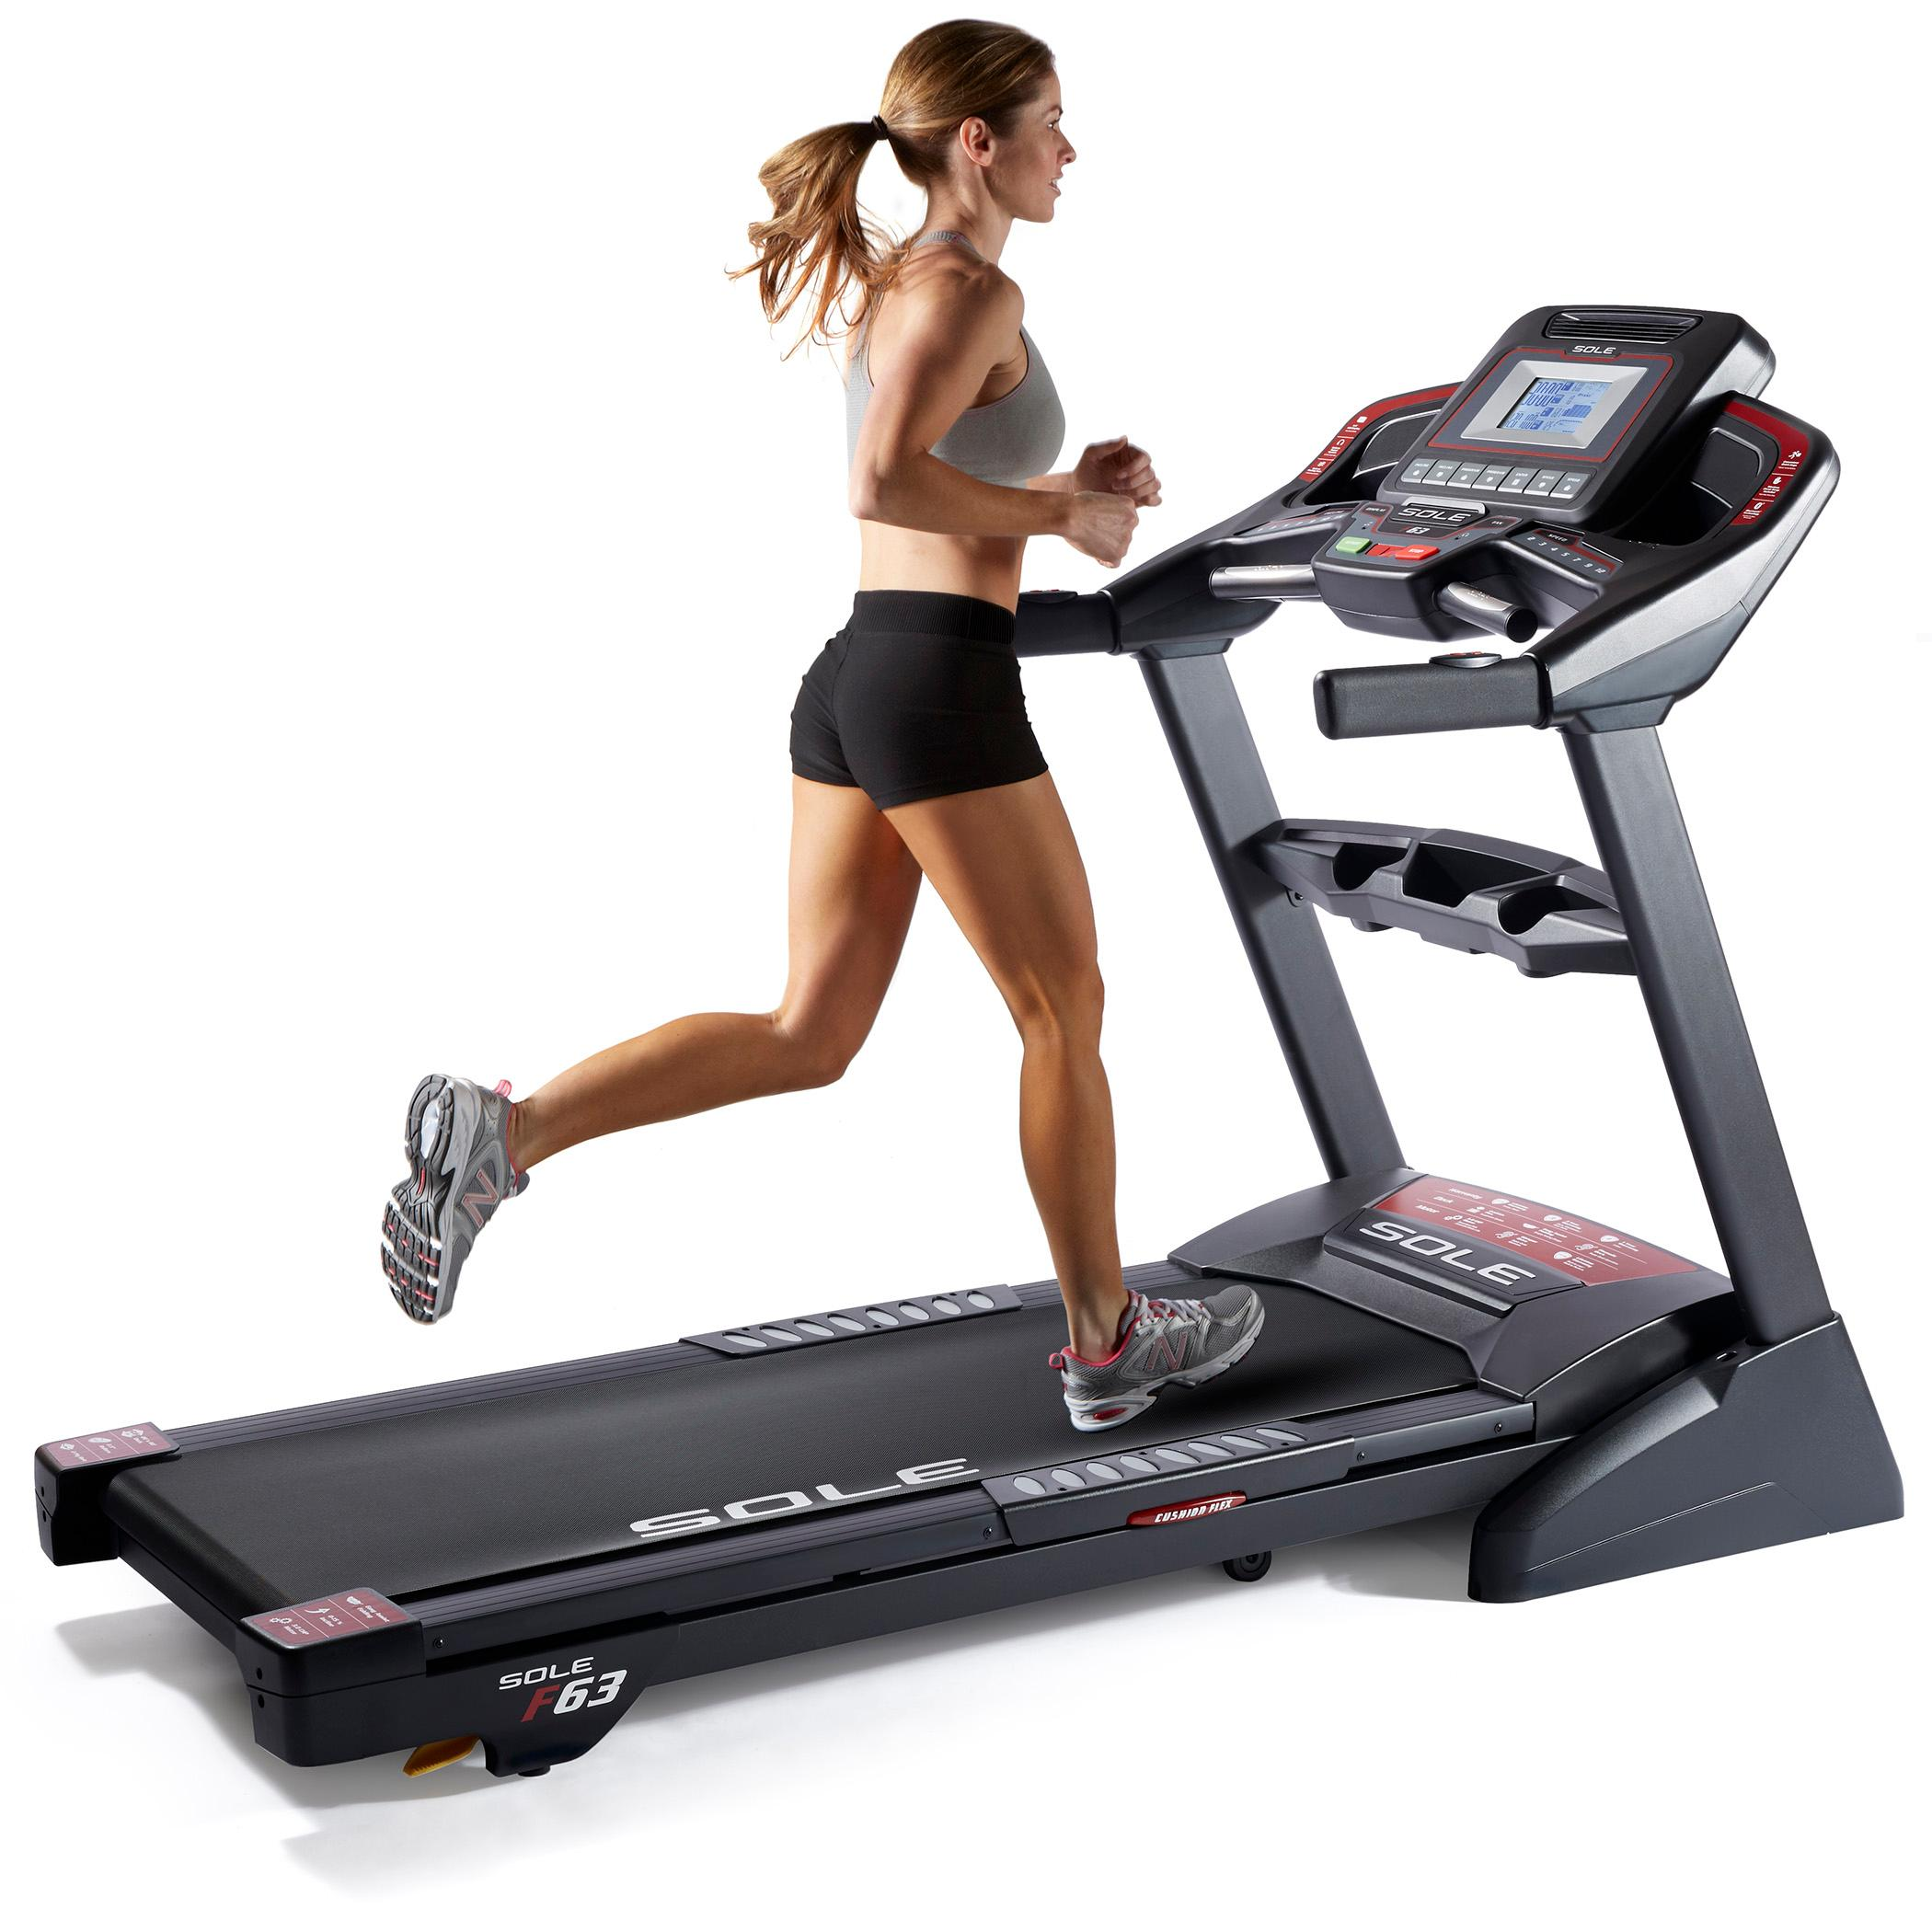 Top Exercise Equipment: SOLE Fitness F63 Folding Treadmill Machine